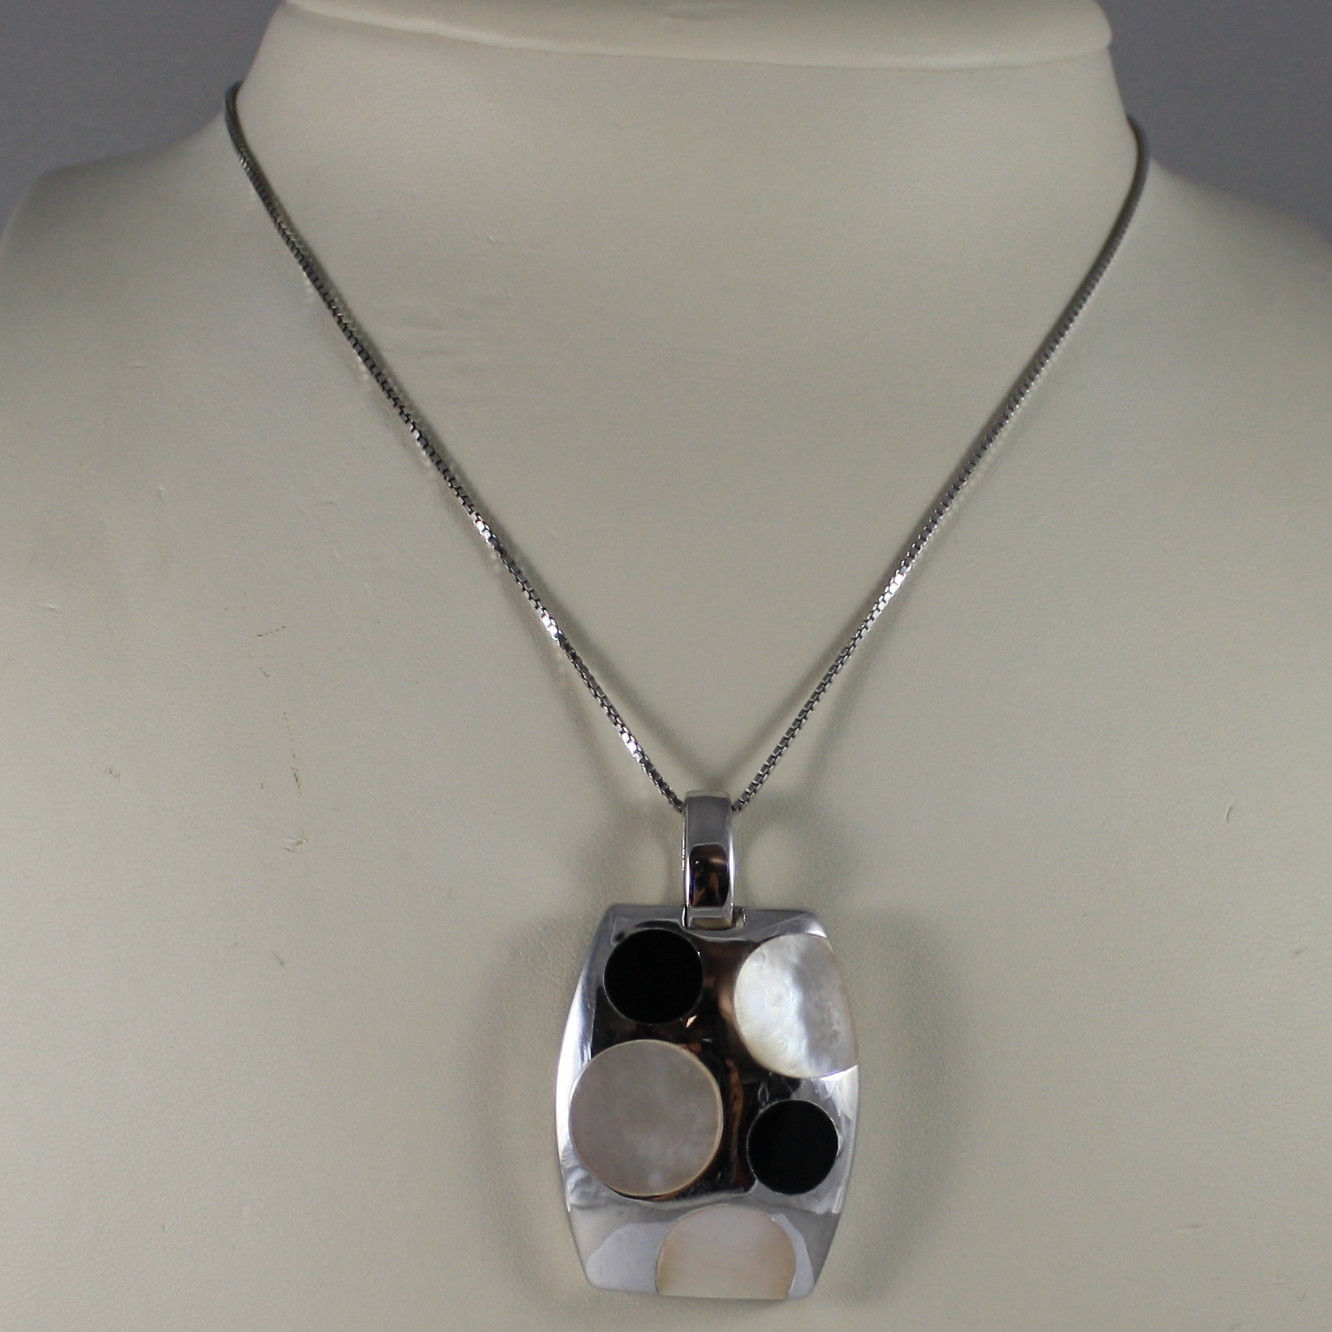 .925 SILVER RHODIUM NECKLACE WITH RECTANGULAR PENDANT, MOTHER OF PEARL AND ONYX